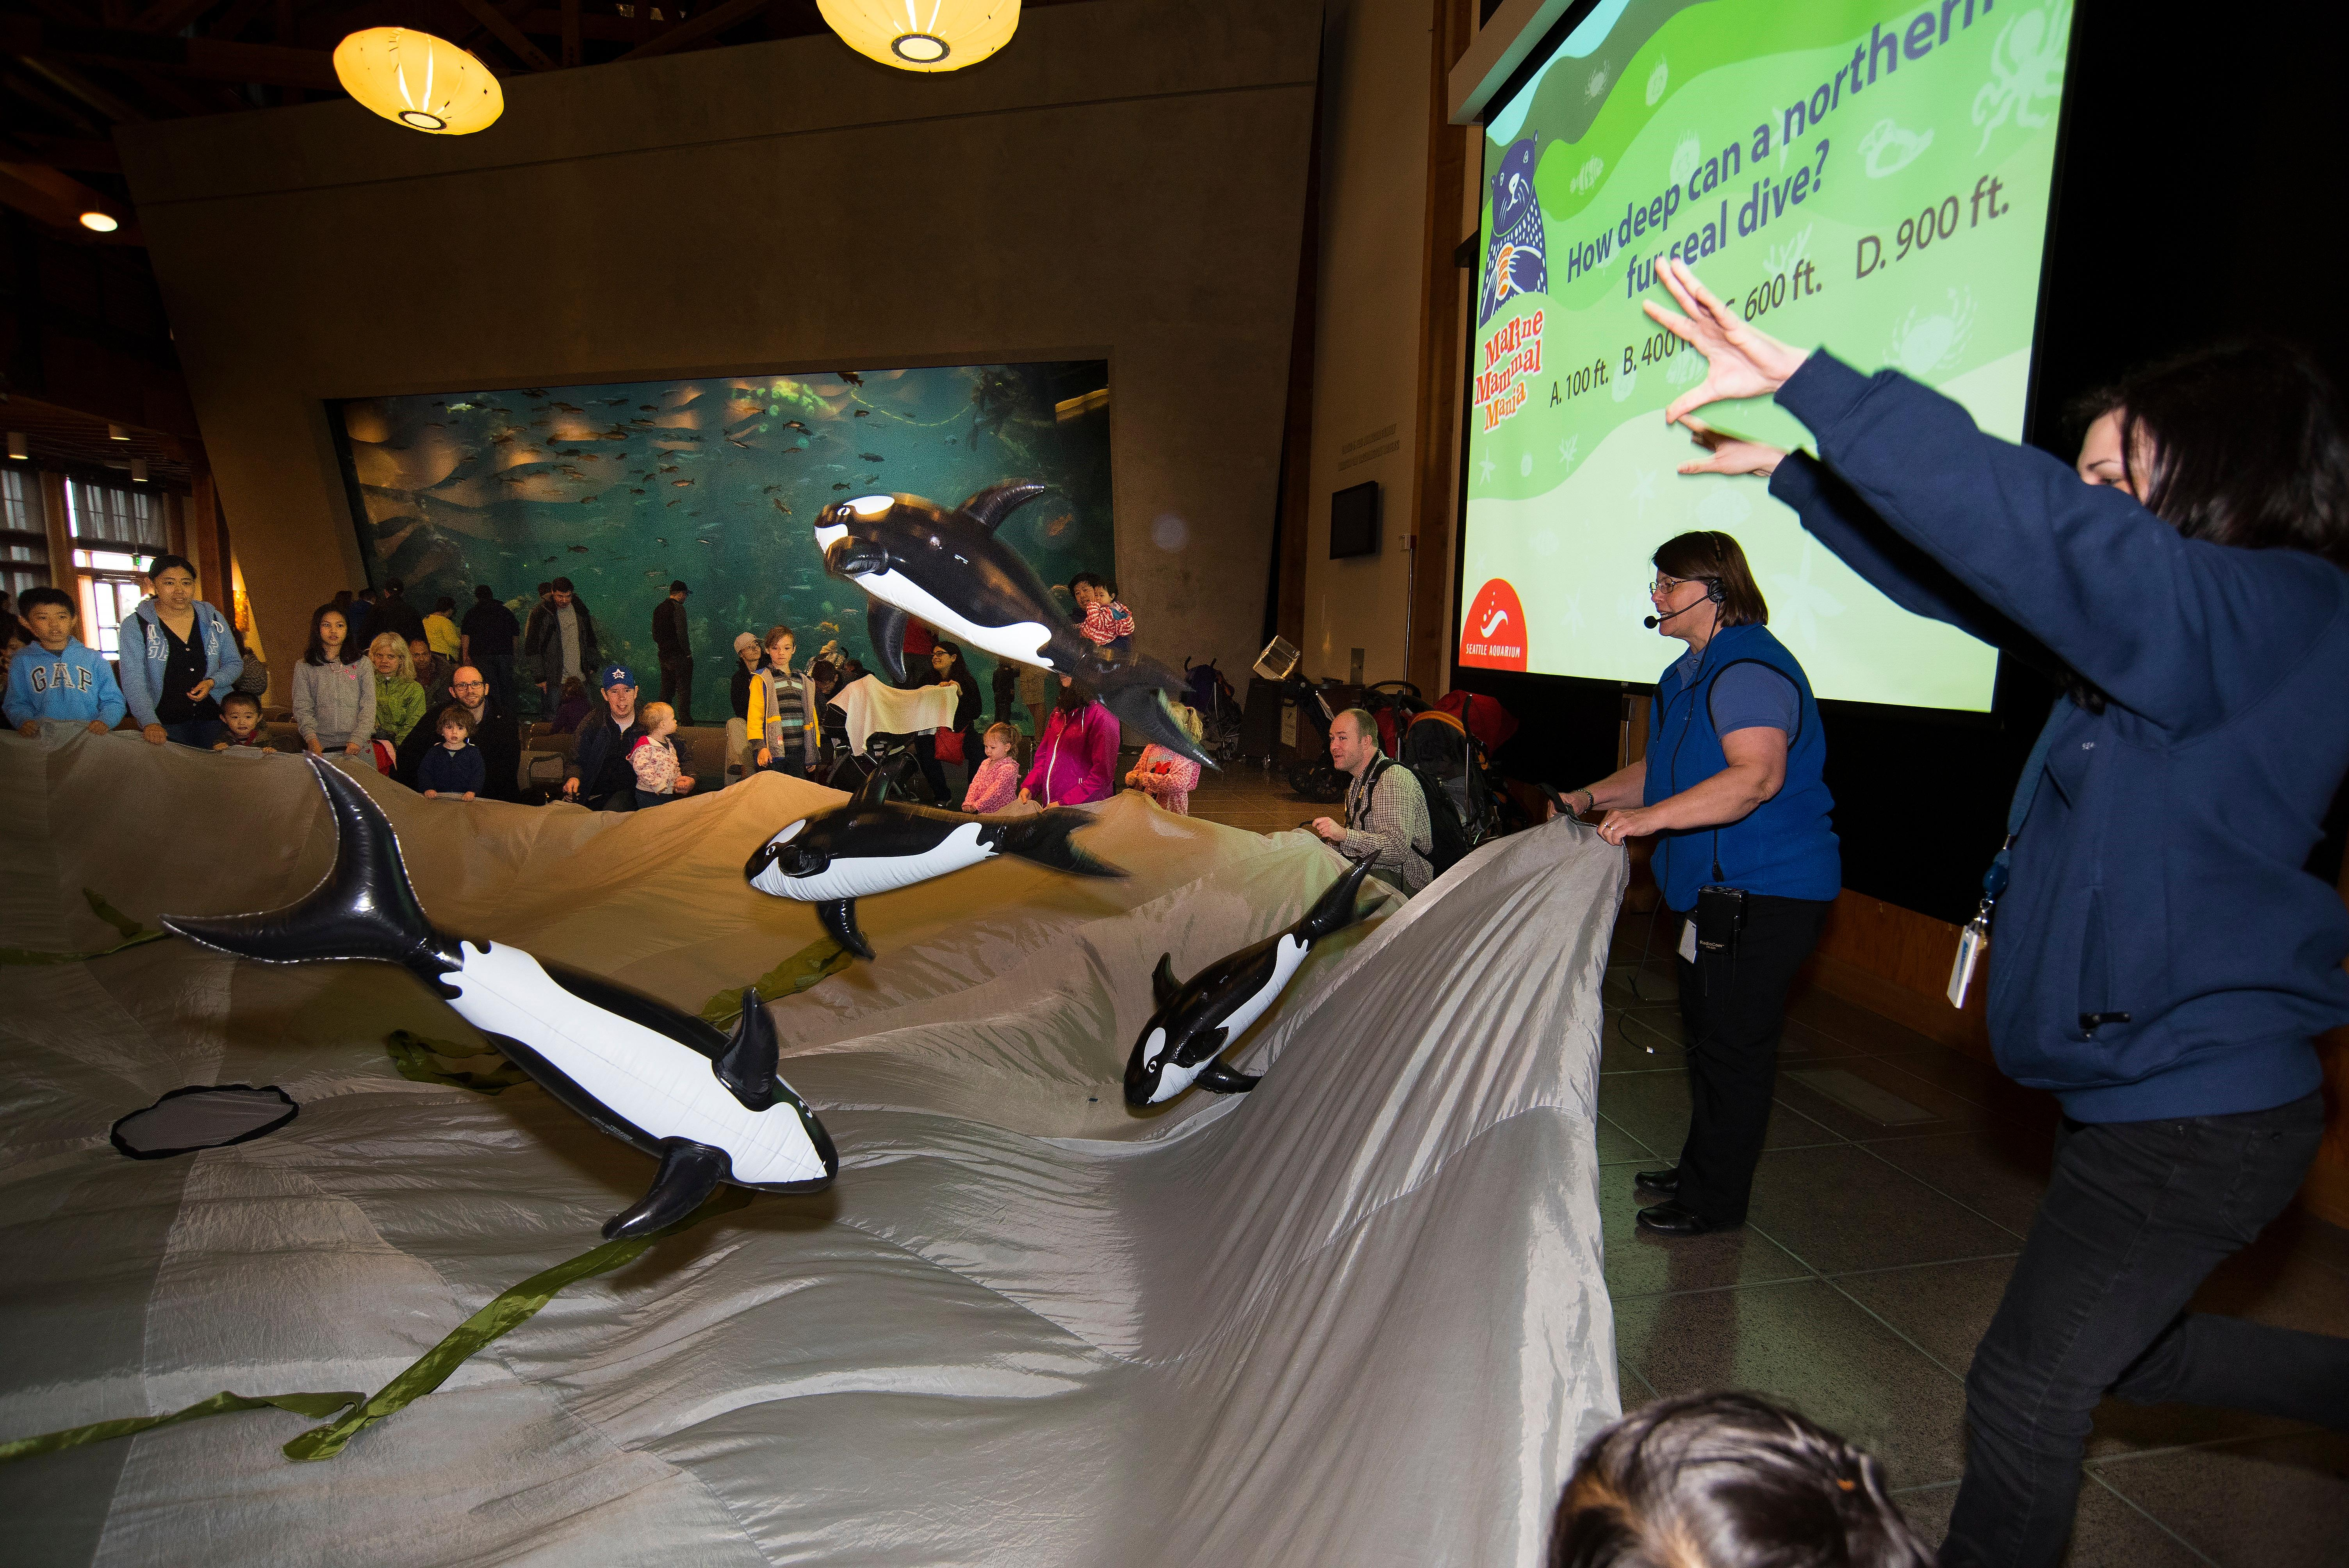 The Parachute game at Marine Mammal Mania is fun for kids and gives adults a chance to sit back and relax a little.